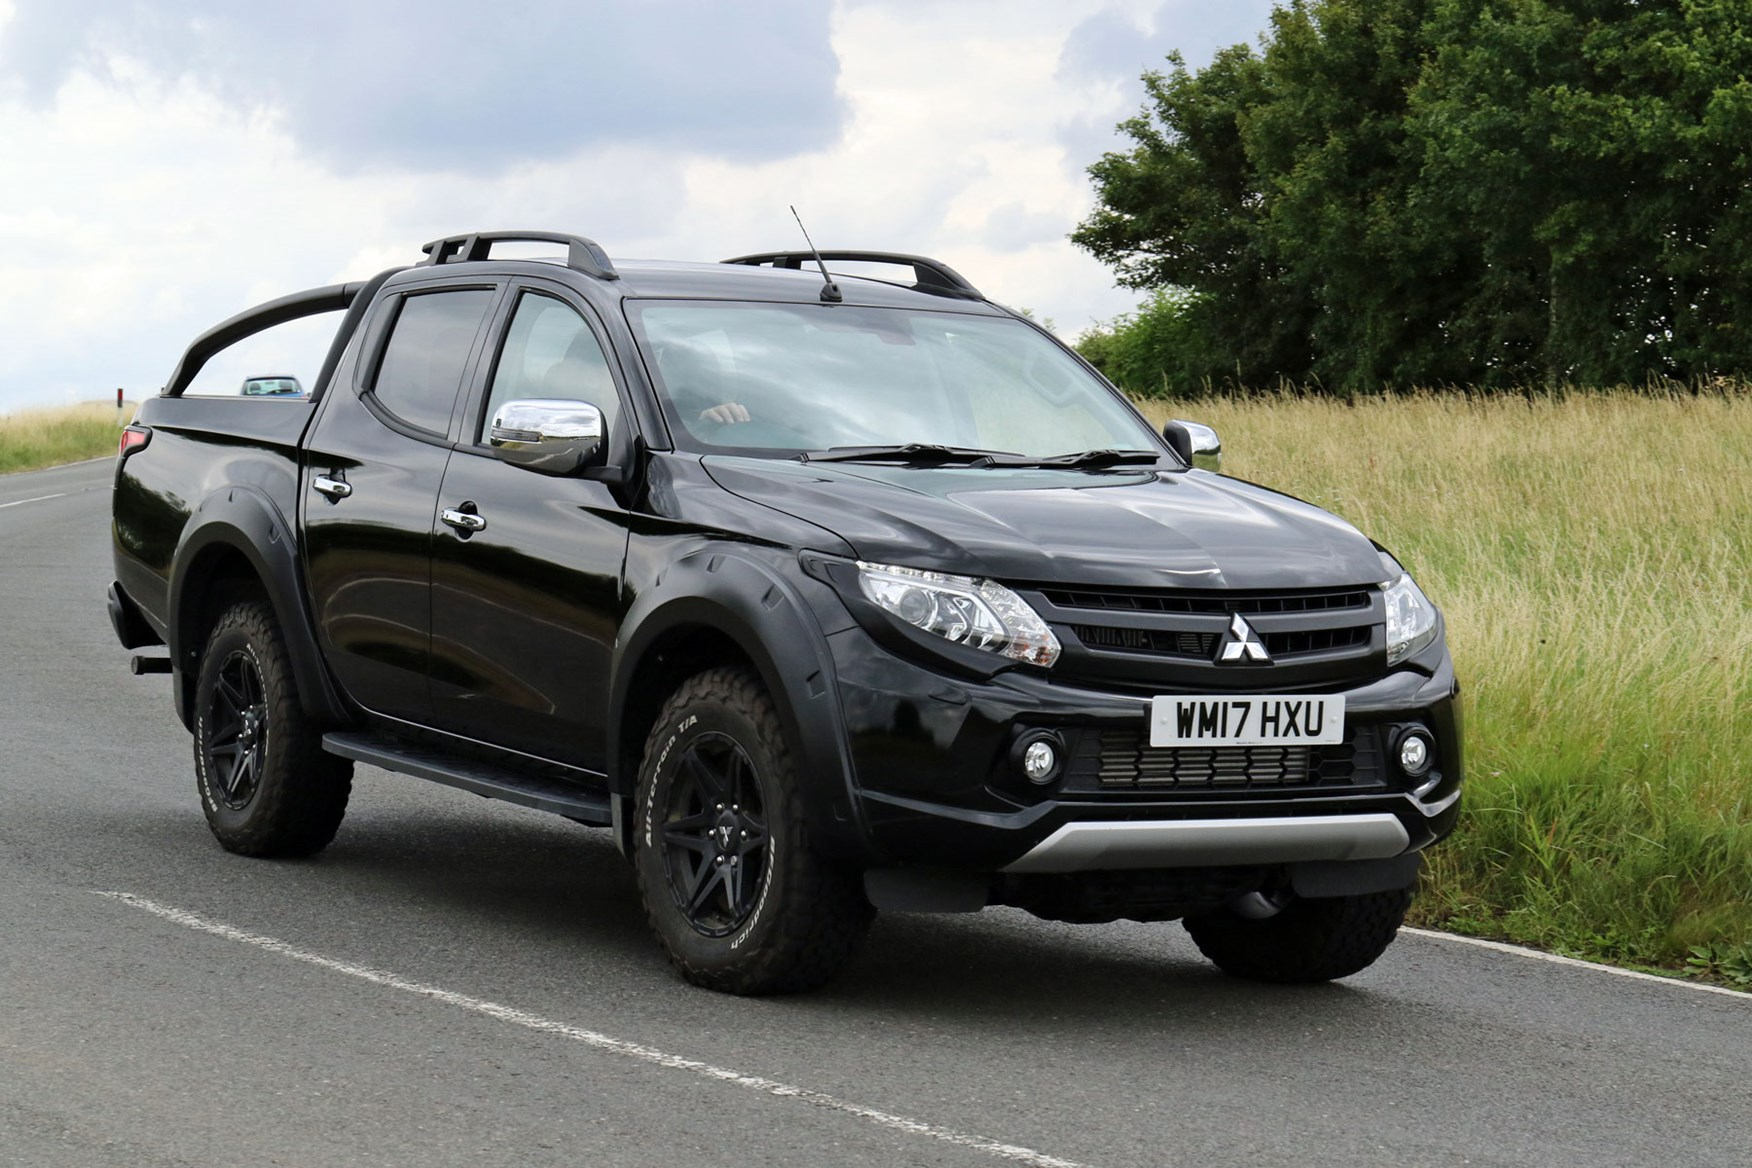 Mitsubishi L200 review, black Barbarian SVP, driving, front view